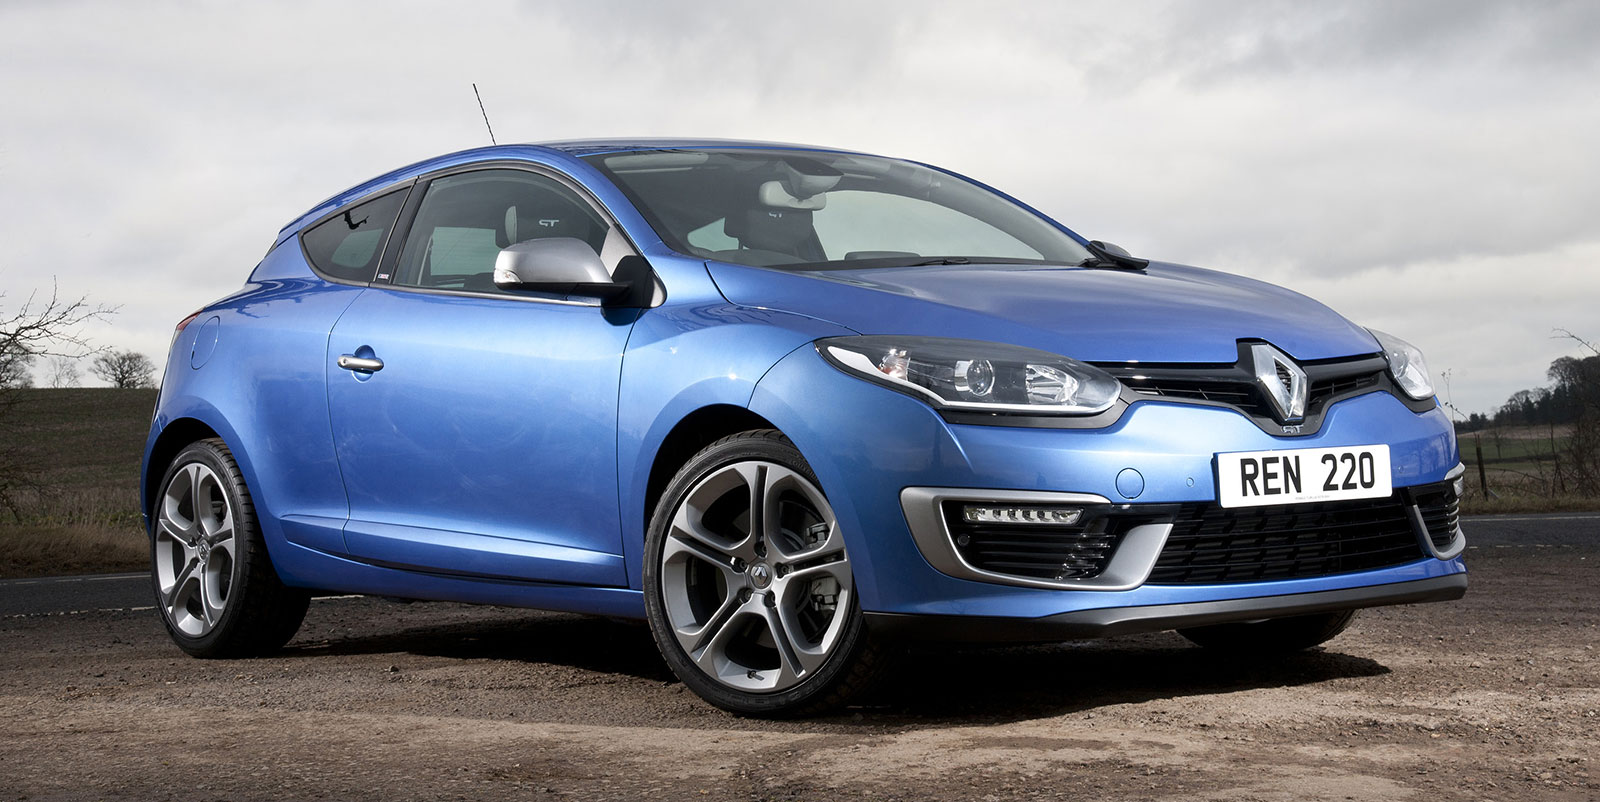 renault megane gt 220 a milder rs experience. Black Bedroom Furniture Sets. Home Design Ideas